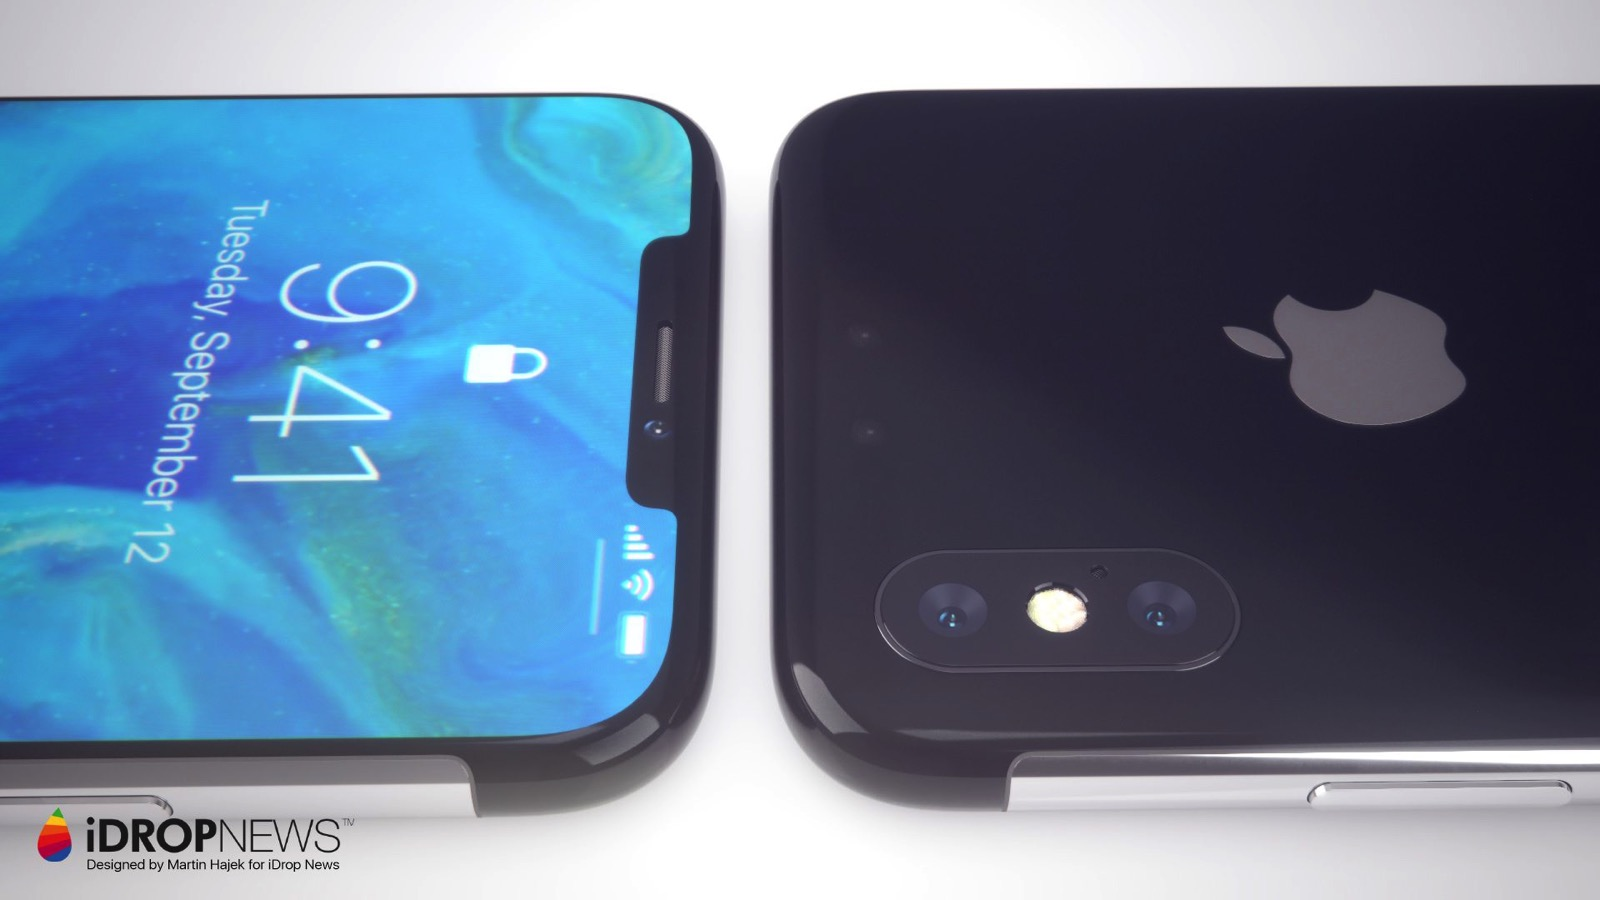 IPhone XI Concept Images iDrop News 4